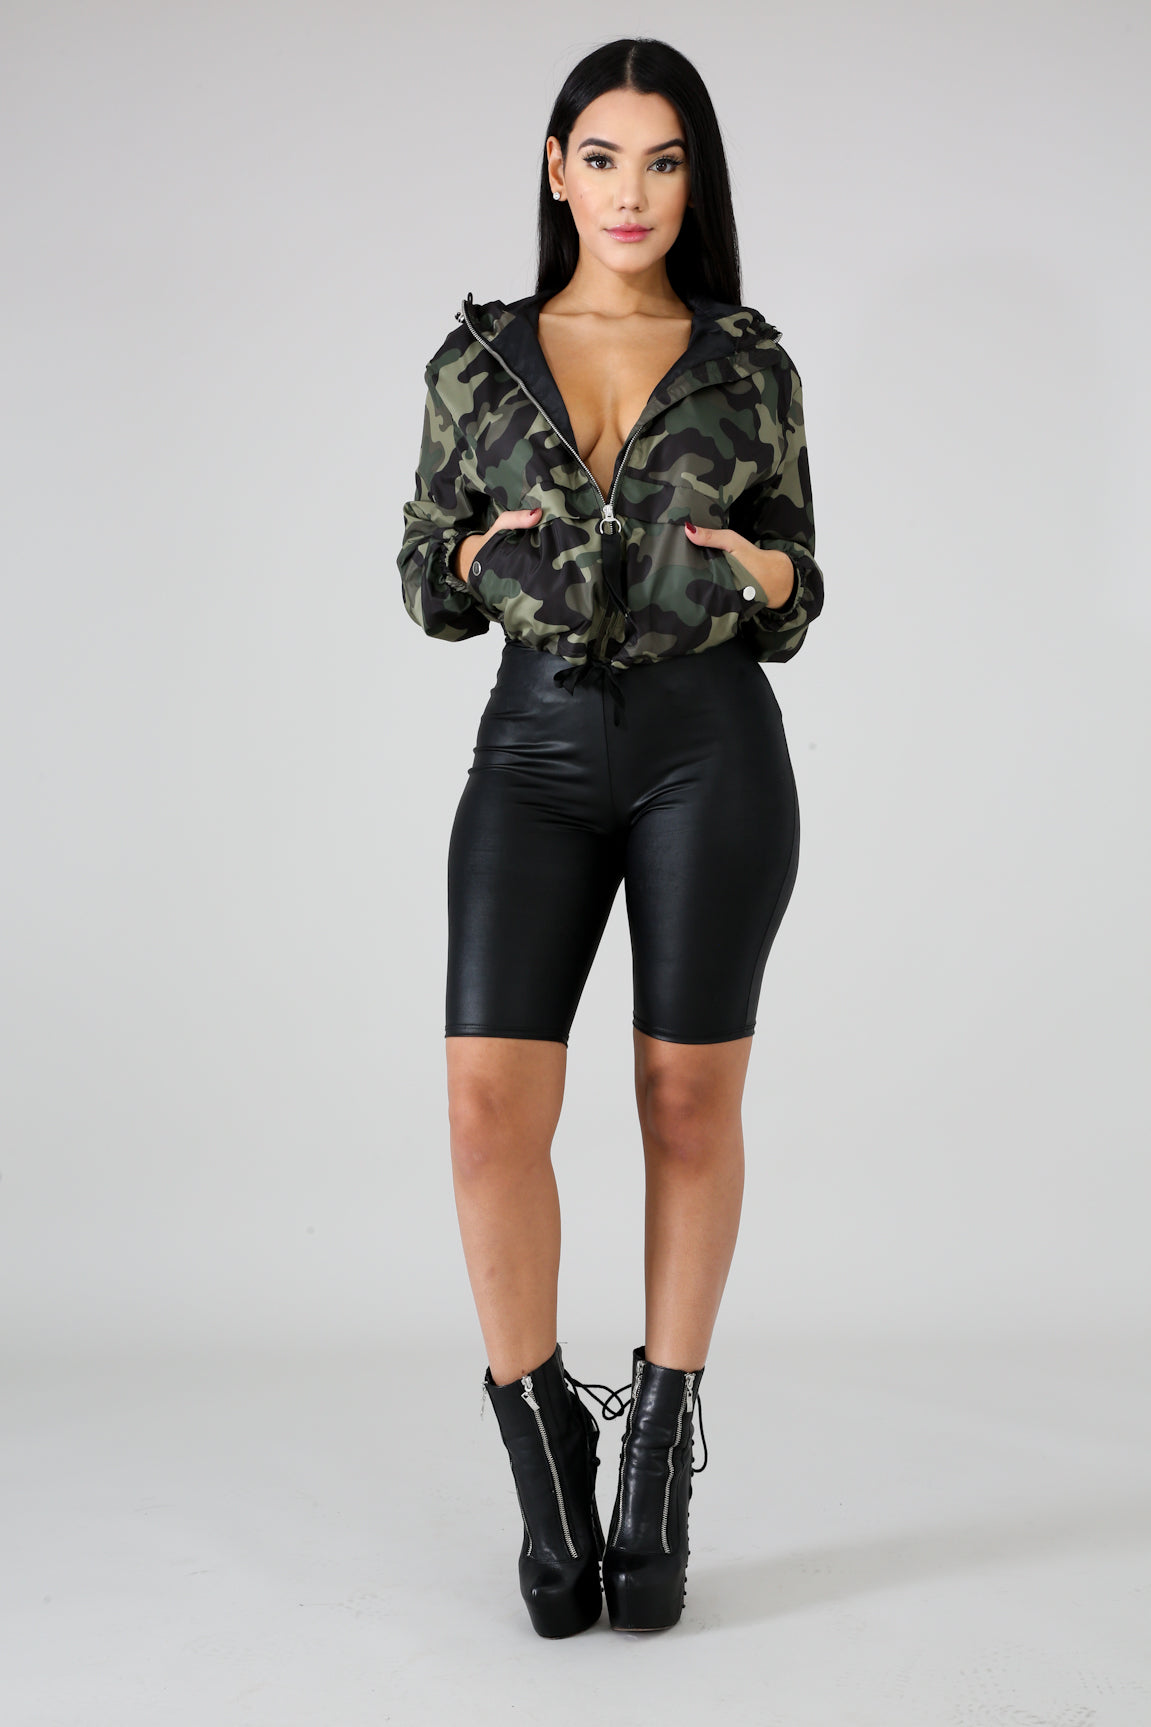 Windbreaker Camouflage Jacket Fit Miami Style